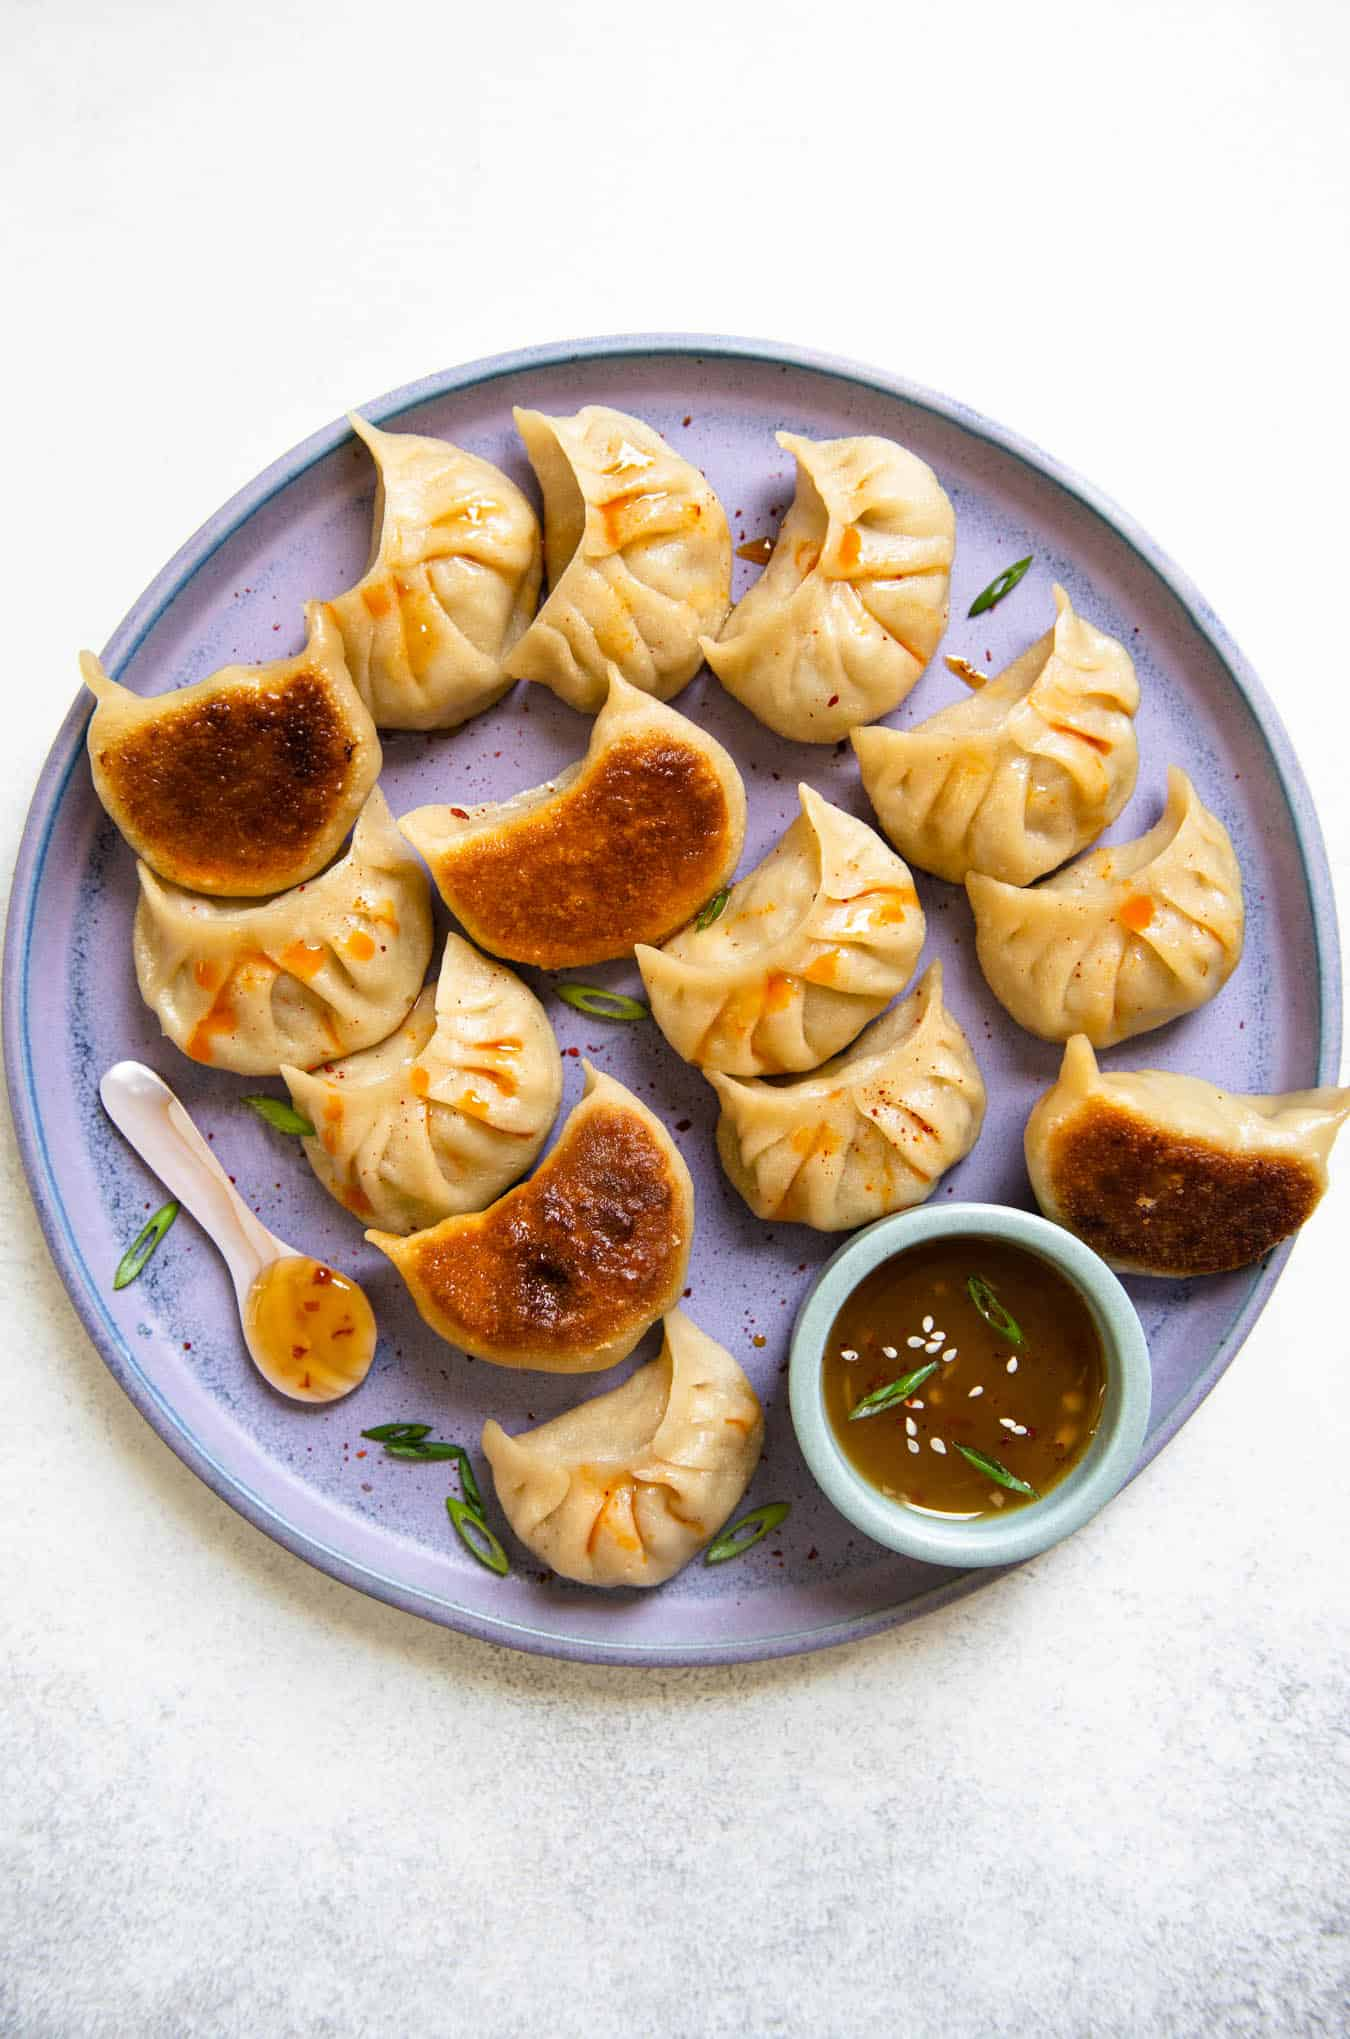 Pork Cabbage Potstickers - includes step-by-step photos